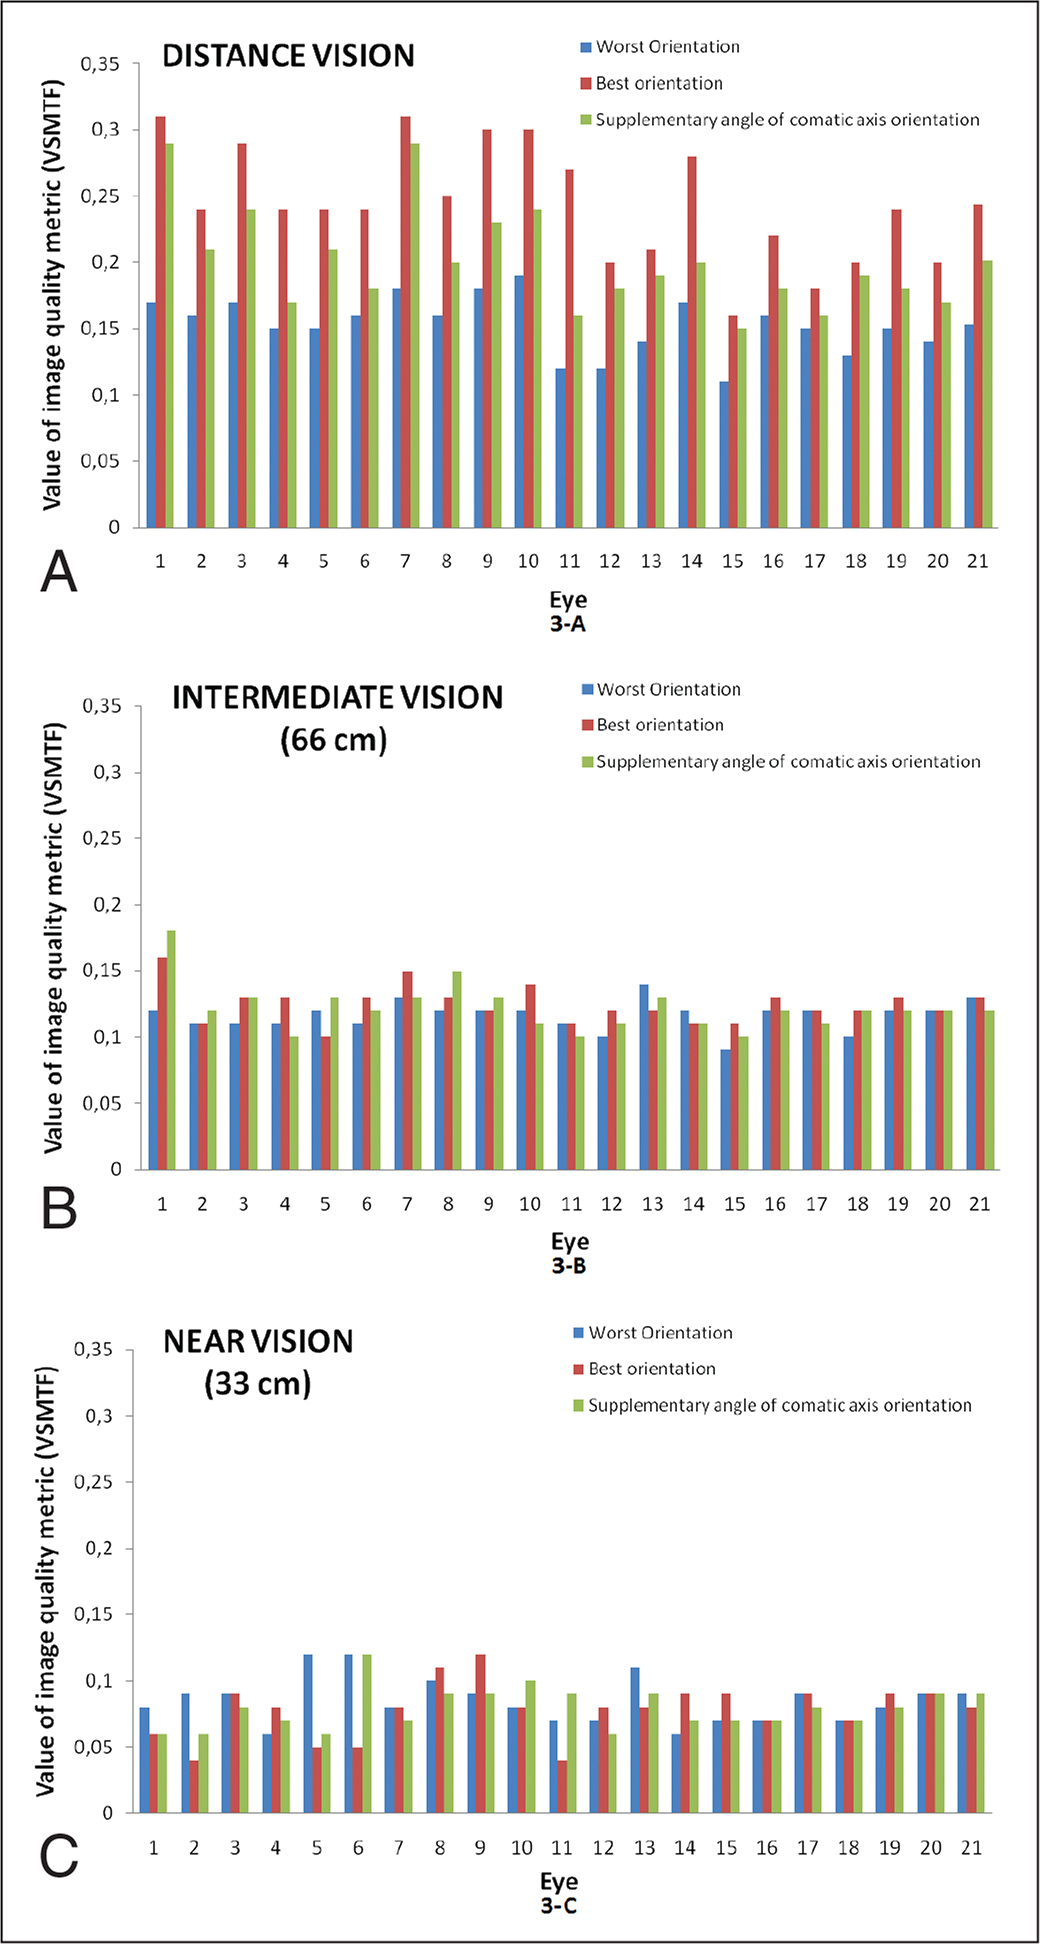 Image quality visually modulated transfer function (VSMTF) metric values for the best and wost possible orientation of the intraocular lens (IOL) and for the IOL oriented toward the supplementary angle of the comatic axis (5.0-mm pupil) for (A) distance, (B) intermediate, and (C) near vision.